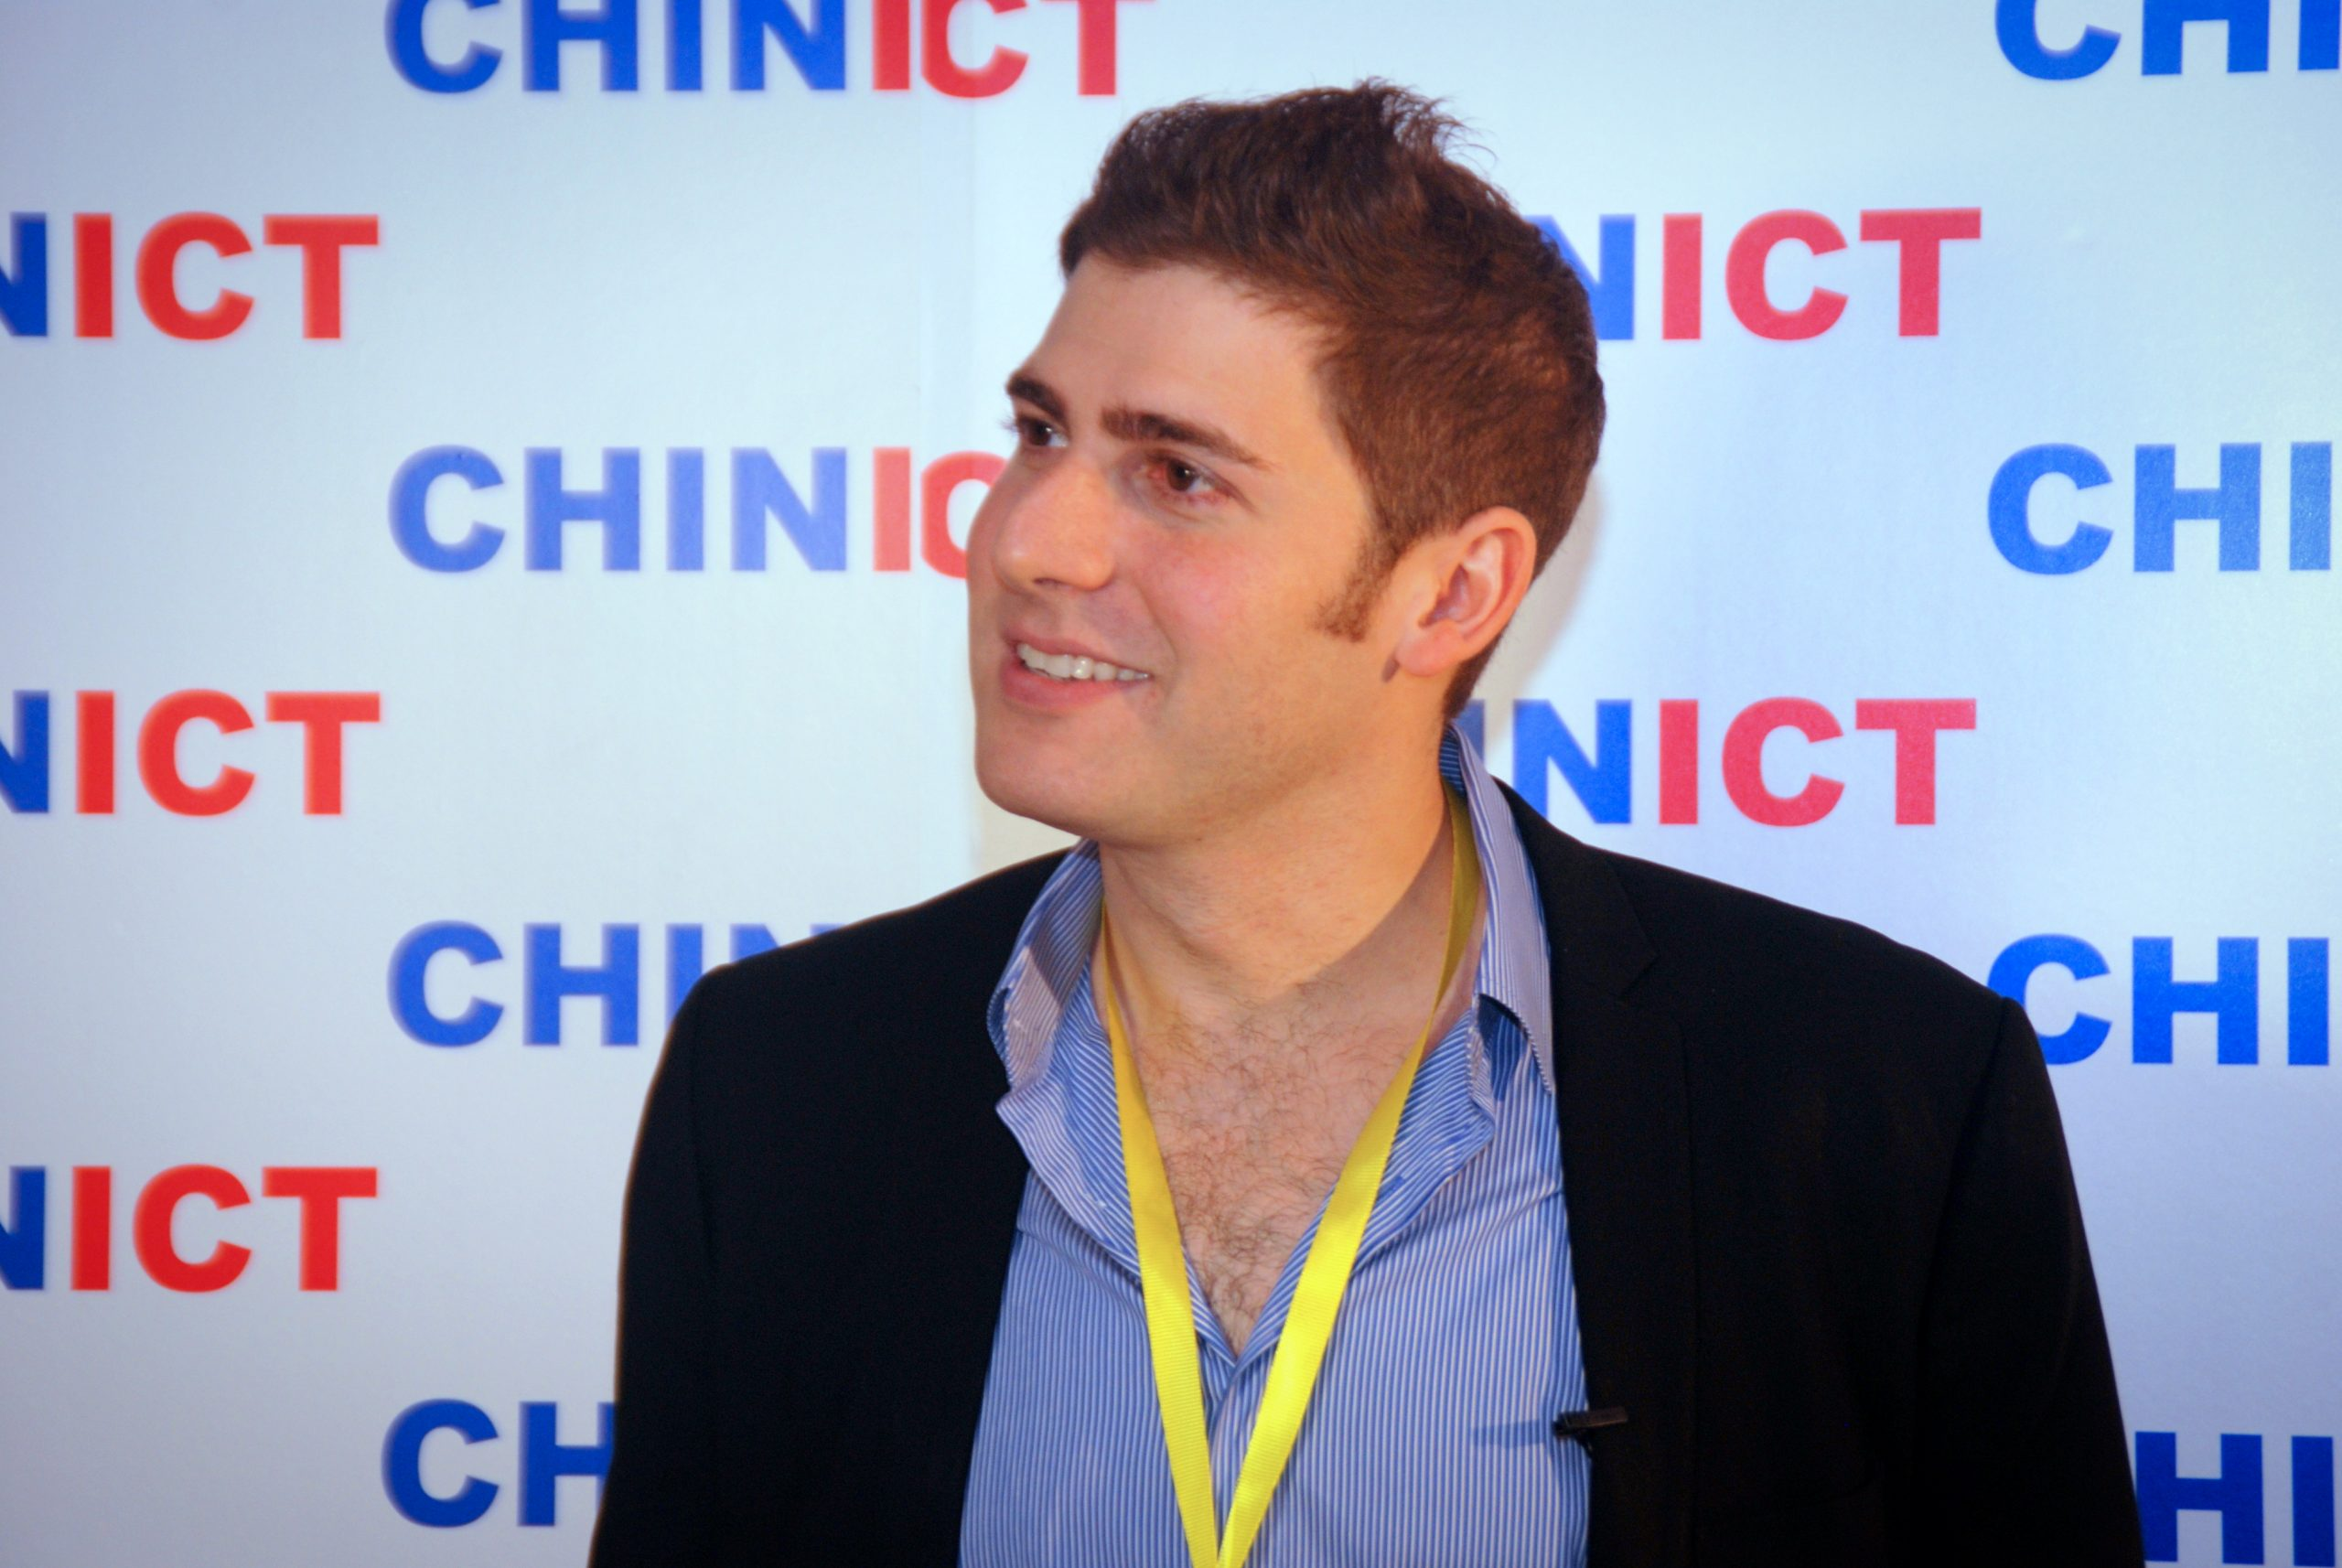 Eduardo Saverin, B Capital